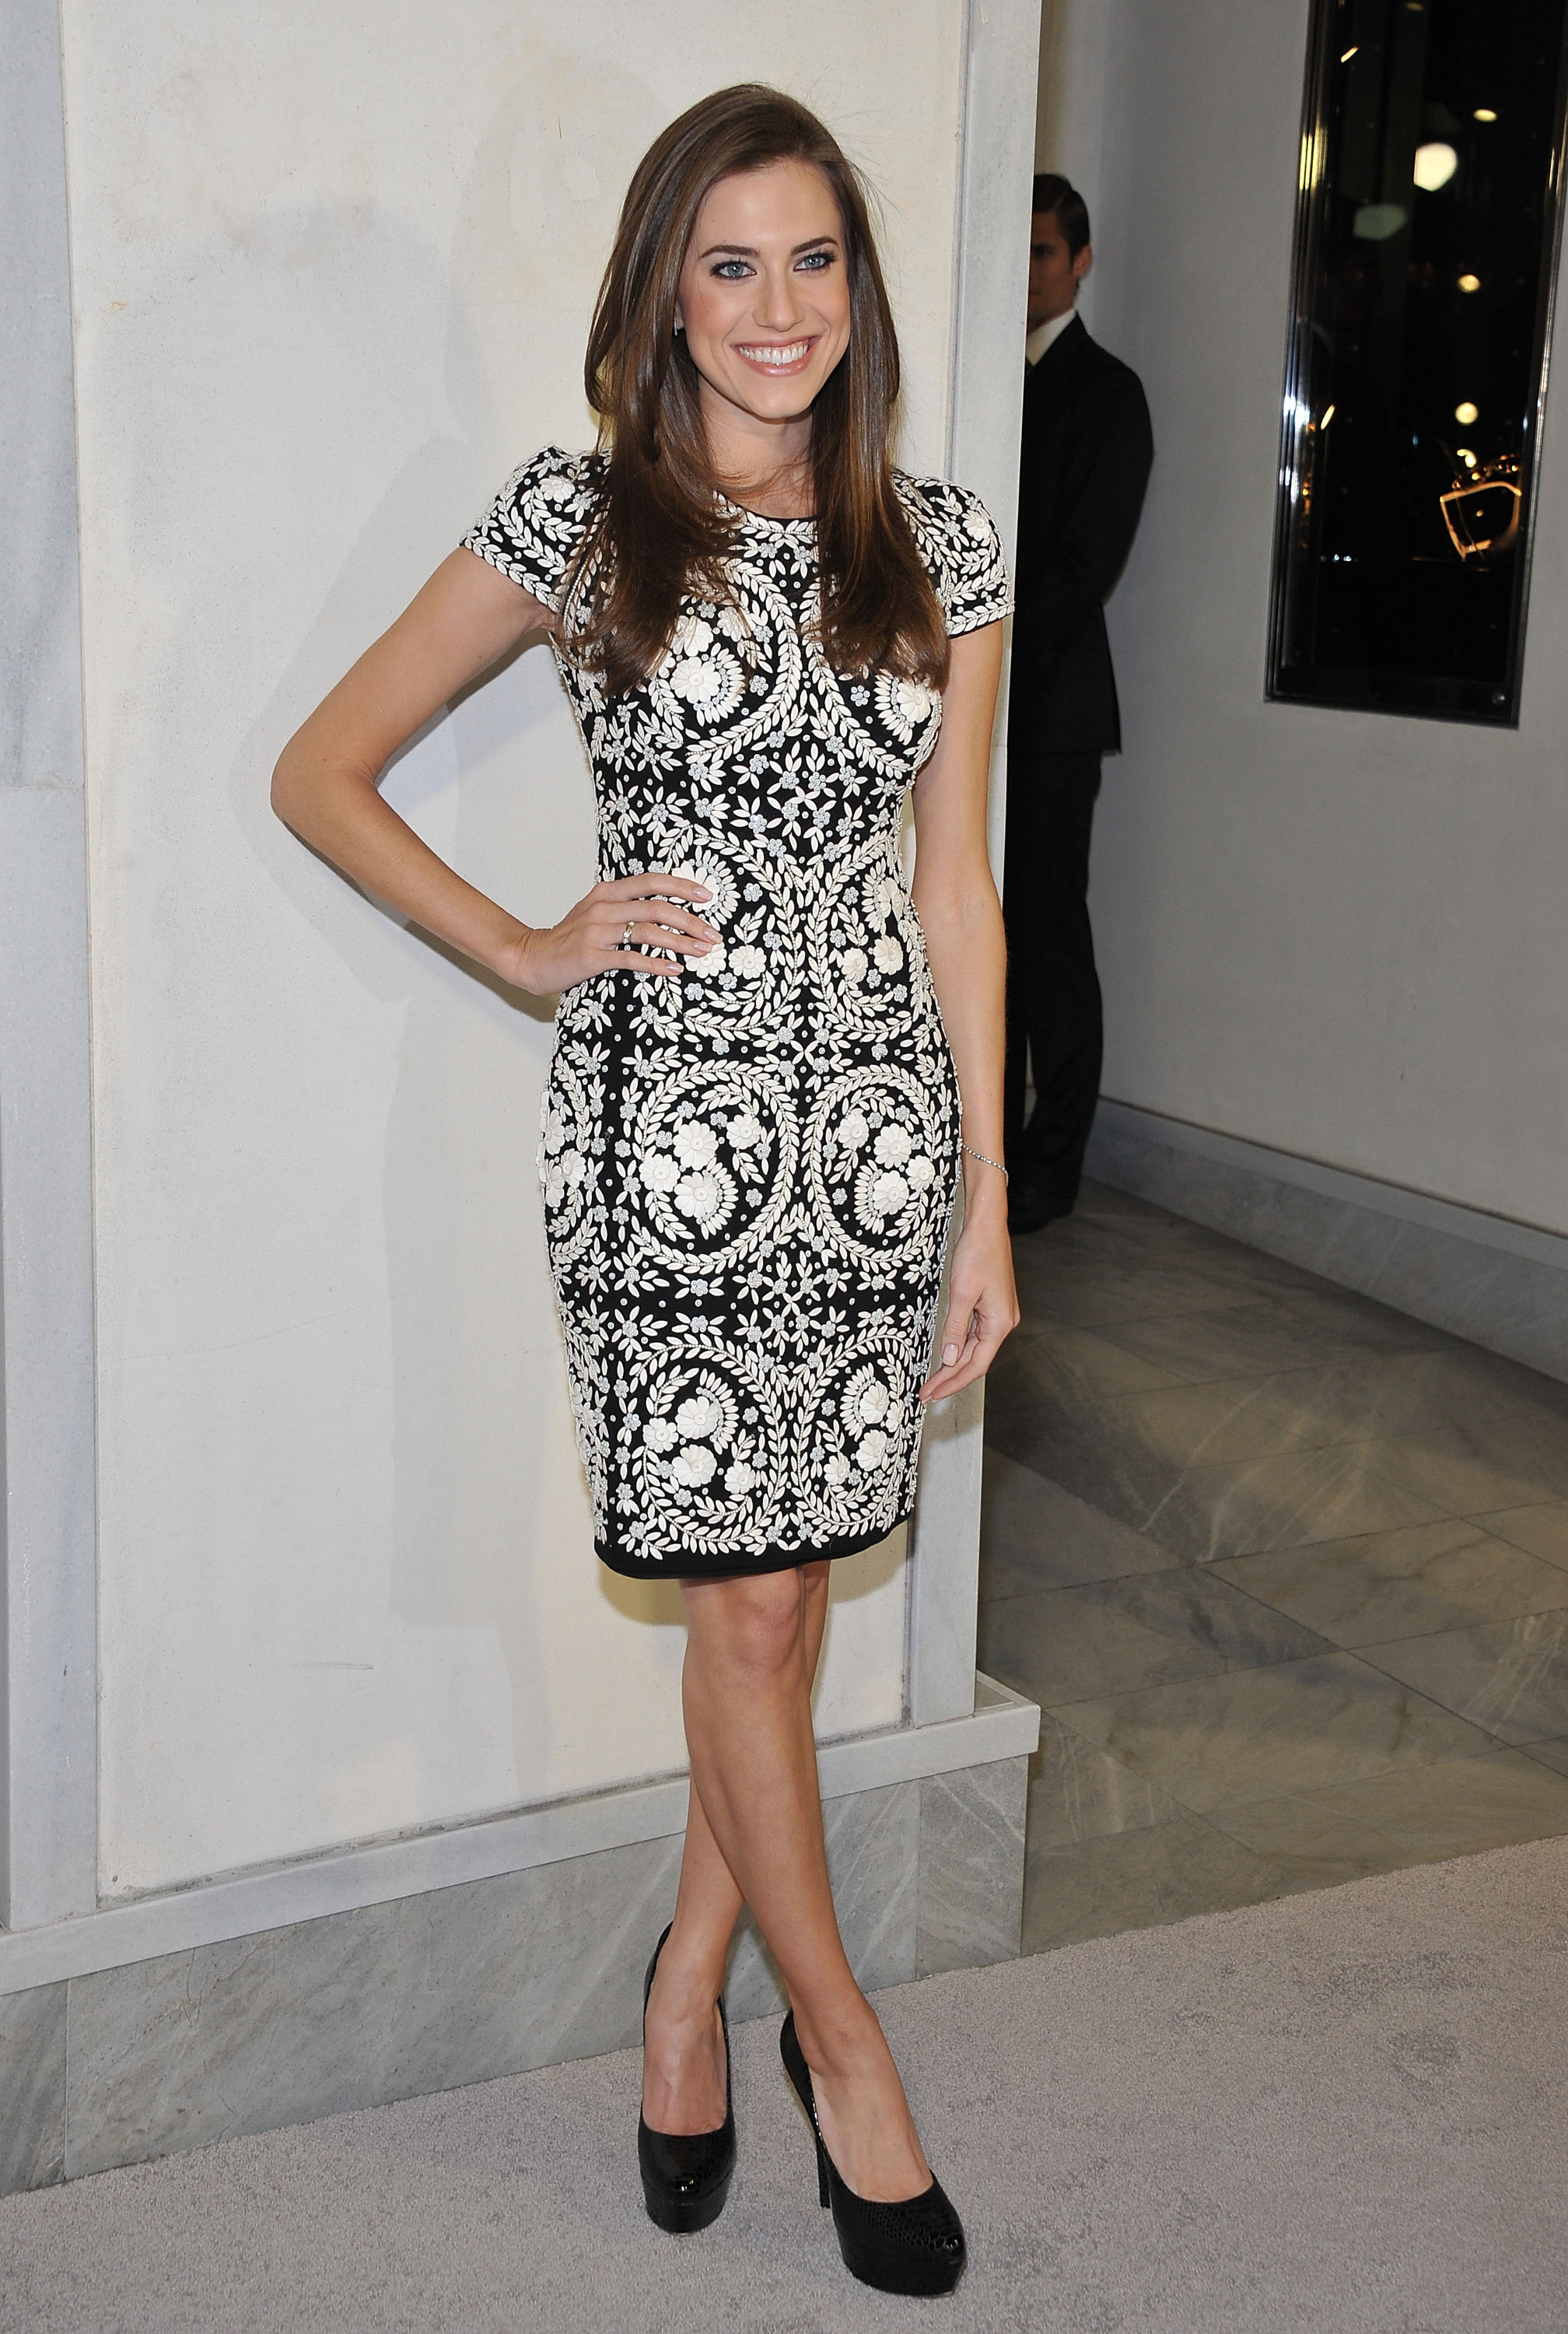 Allison Williams at the Tom Ford cocktail party in Los Angeles.